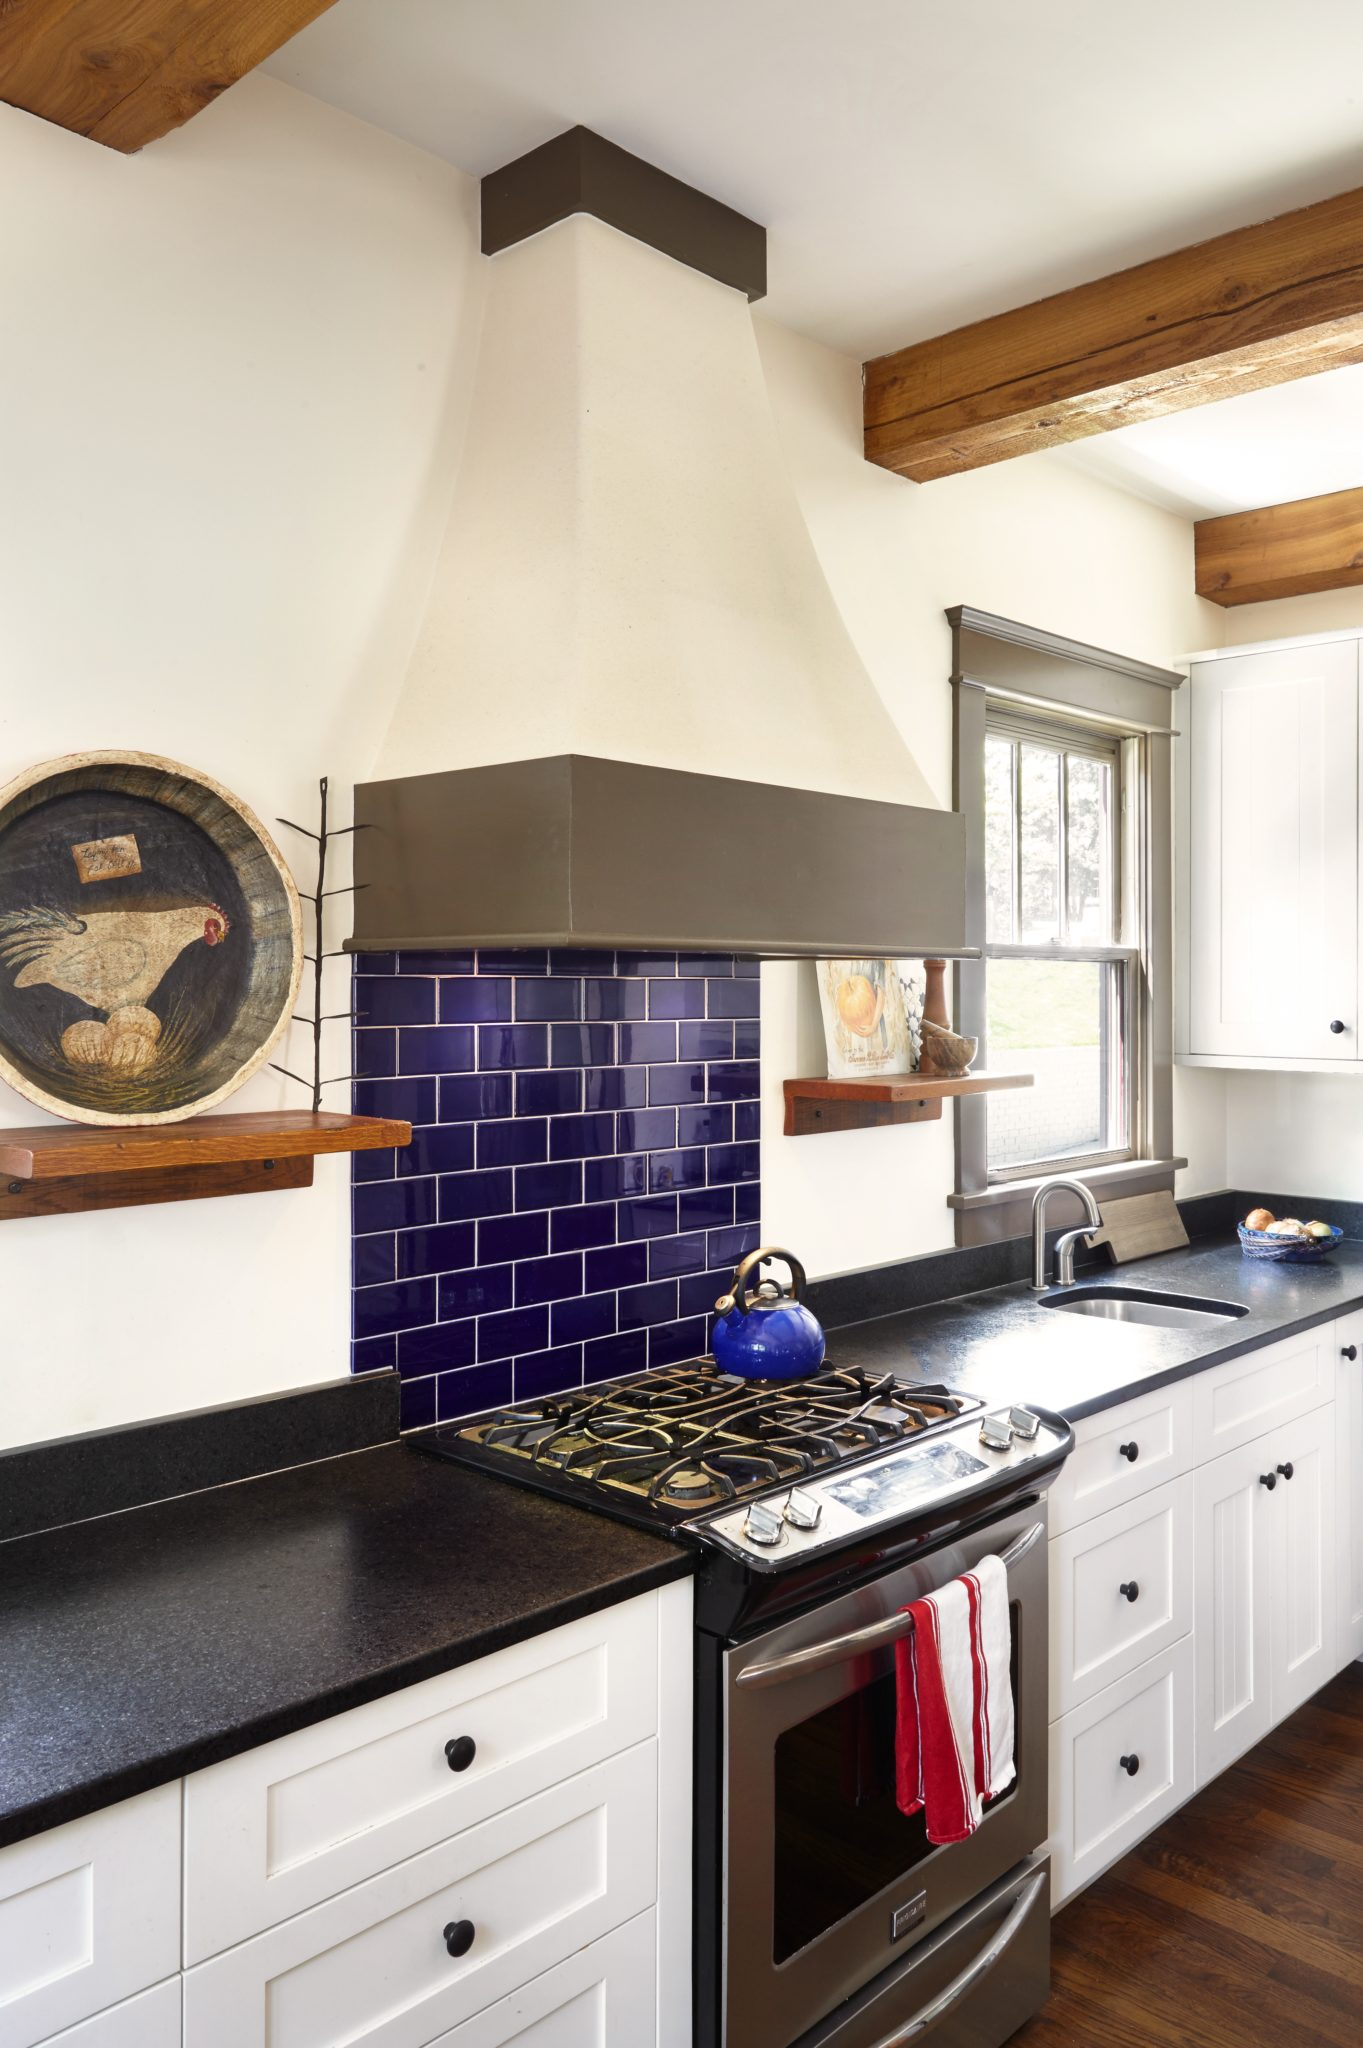 Cobalt blue tile mixes with rustic exposed beams in this craftsman kitchen by Marcelle Guilbeau Interior Design